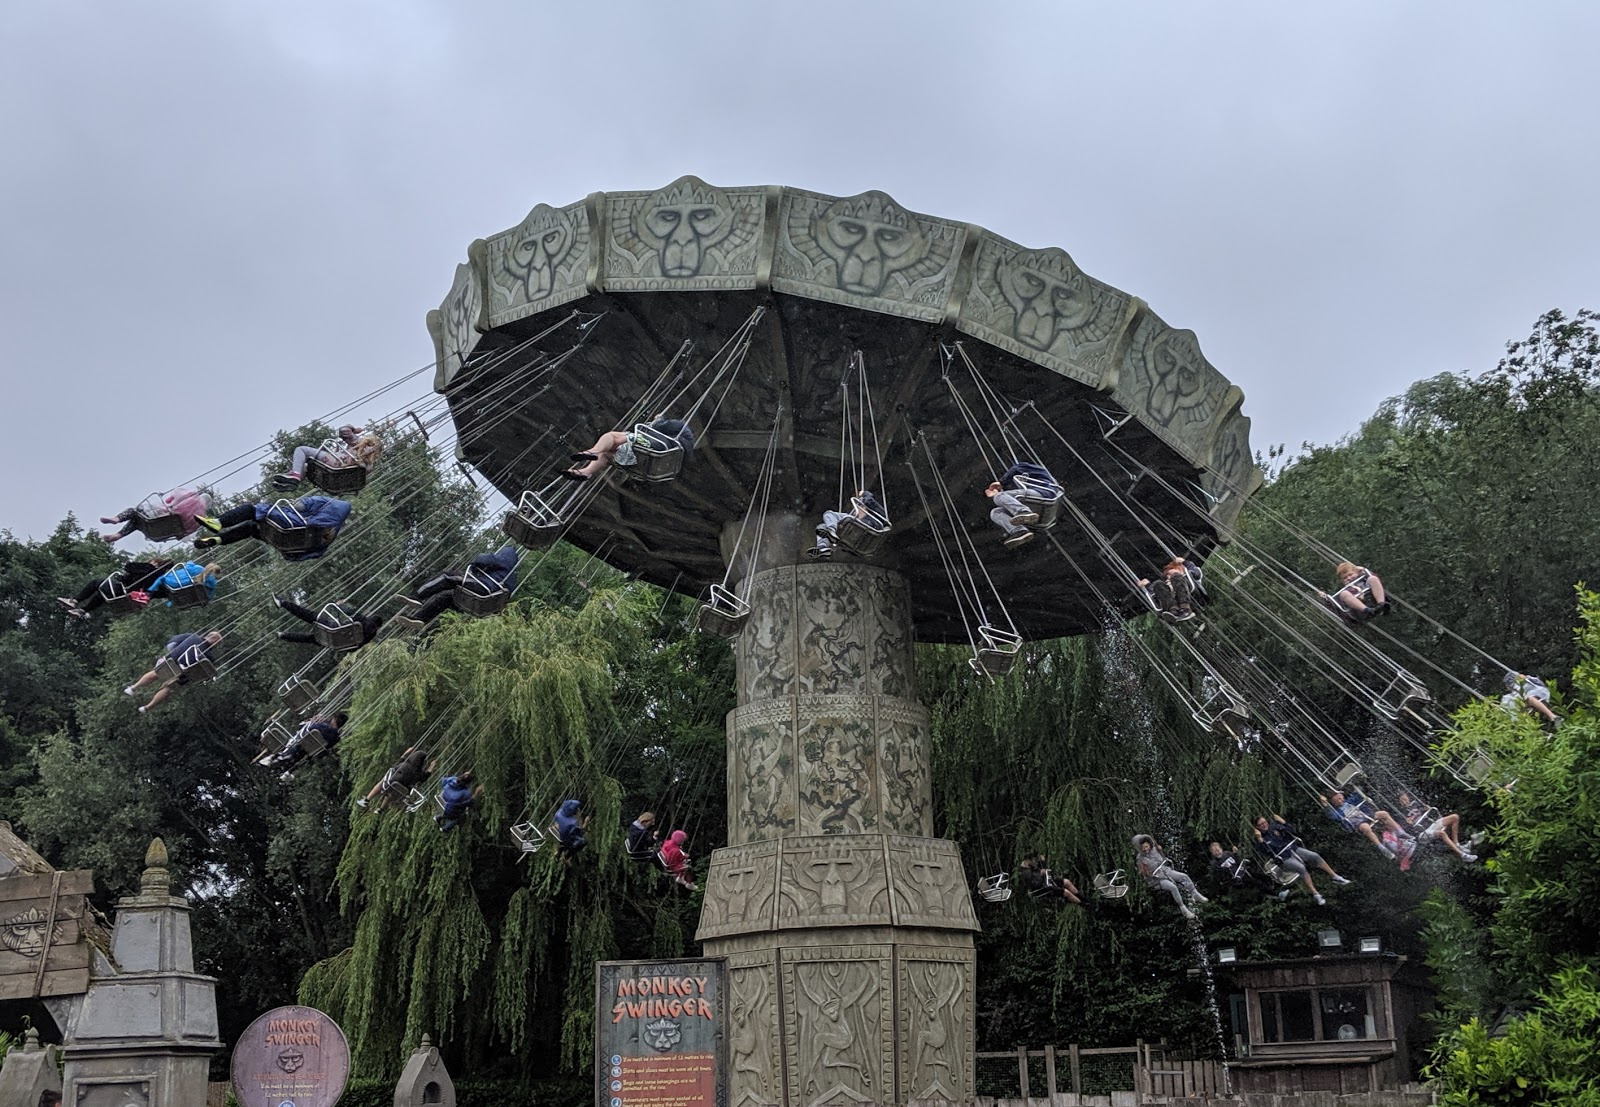 Exploring the Southern Merlin Theme Parks with Tweens  - monkey swings at Chessington